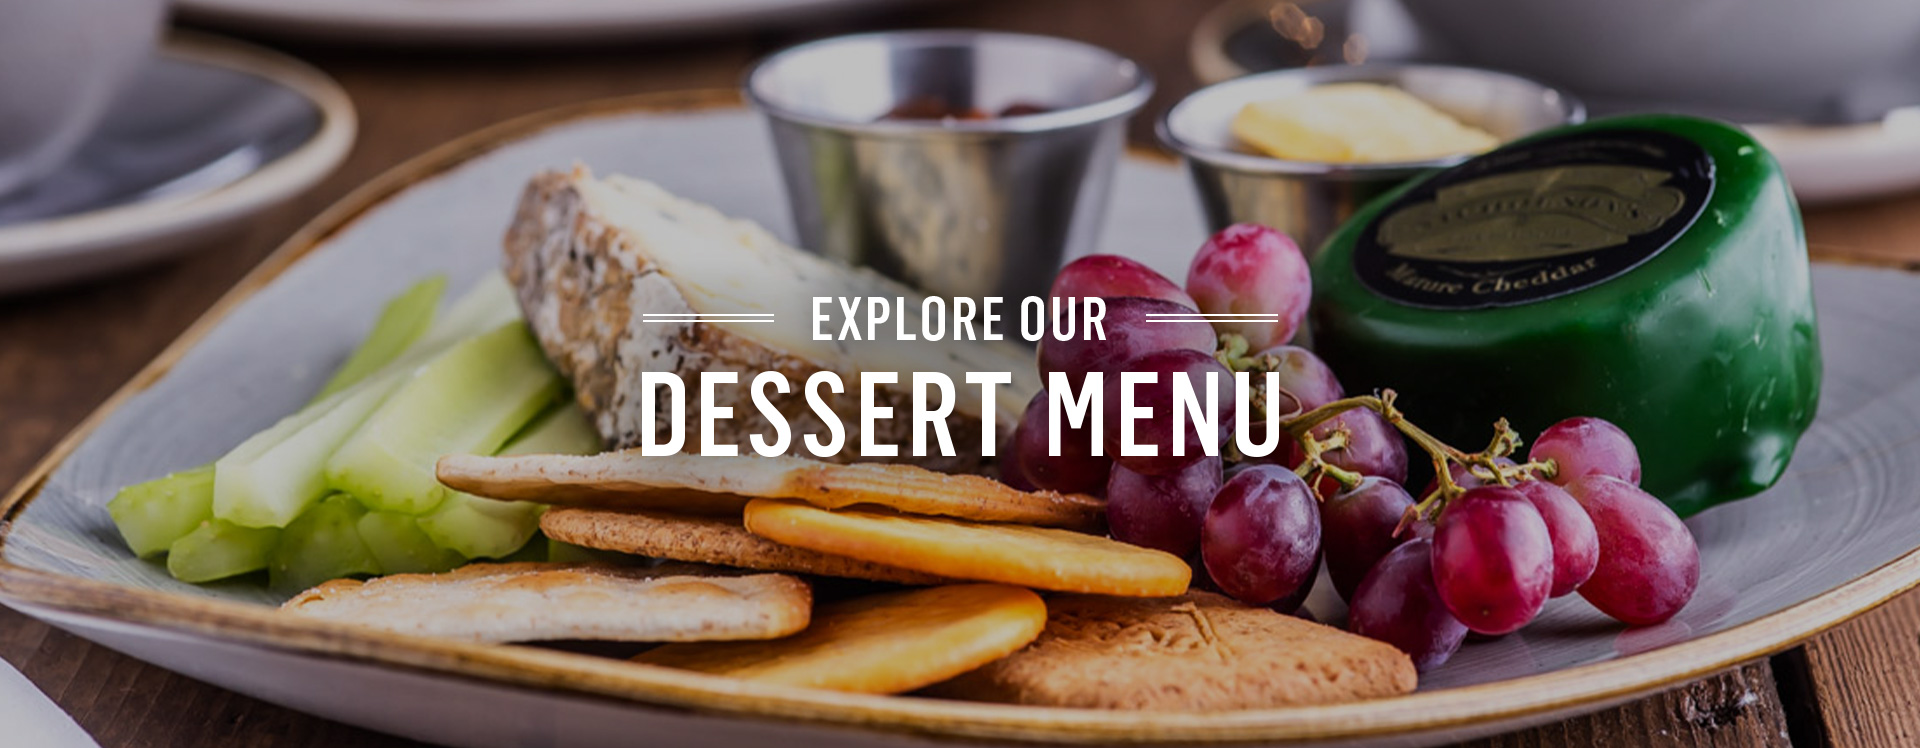 Dessert menu at The Princess Of Wales - Book a table